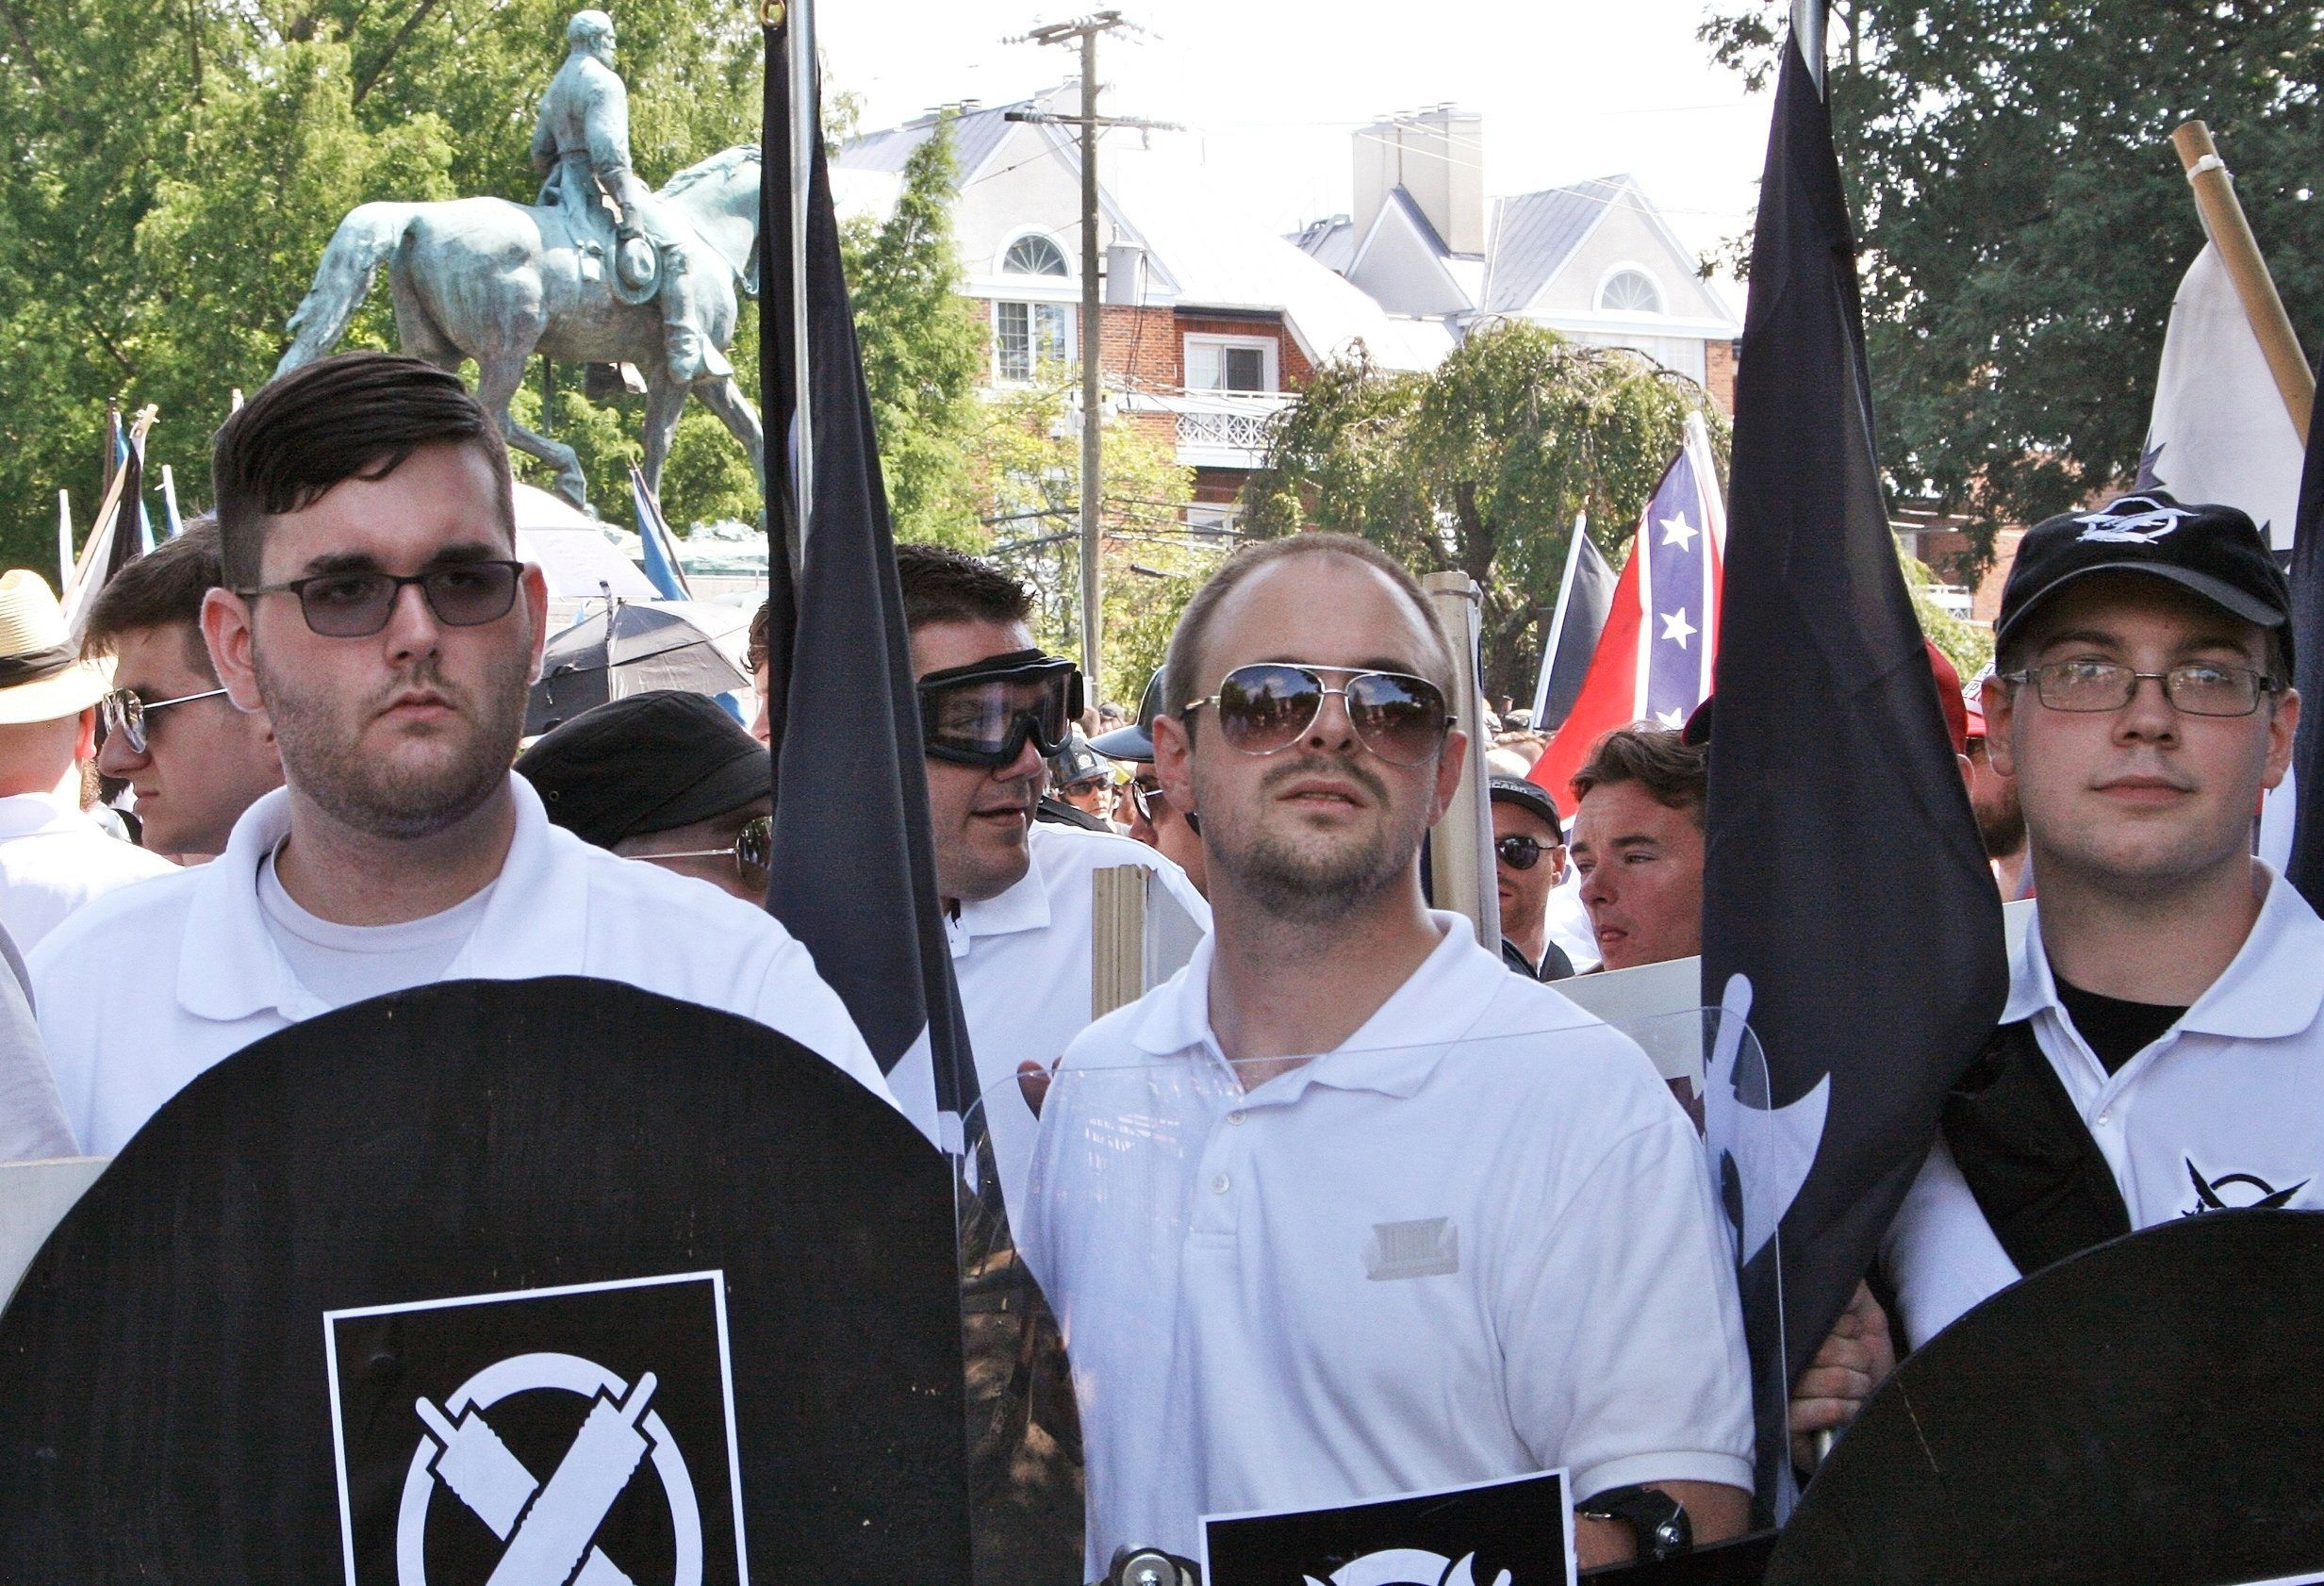 FILE - In this Saturday, Aug. 12, 2017, file photo, James Alex Fields Jr., left, holds a black shield in Charlottesville, Va., where a white supremacist rally took place. Fields Jr., of Maumee, Ohio, is charged with first-degree murder for allegedly driving his car into a crowd of people protesting against white nationalists. A 32-year-old woman was killed and dozens more were injured. (Alan Goffinski via AP, File)